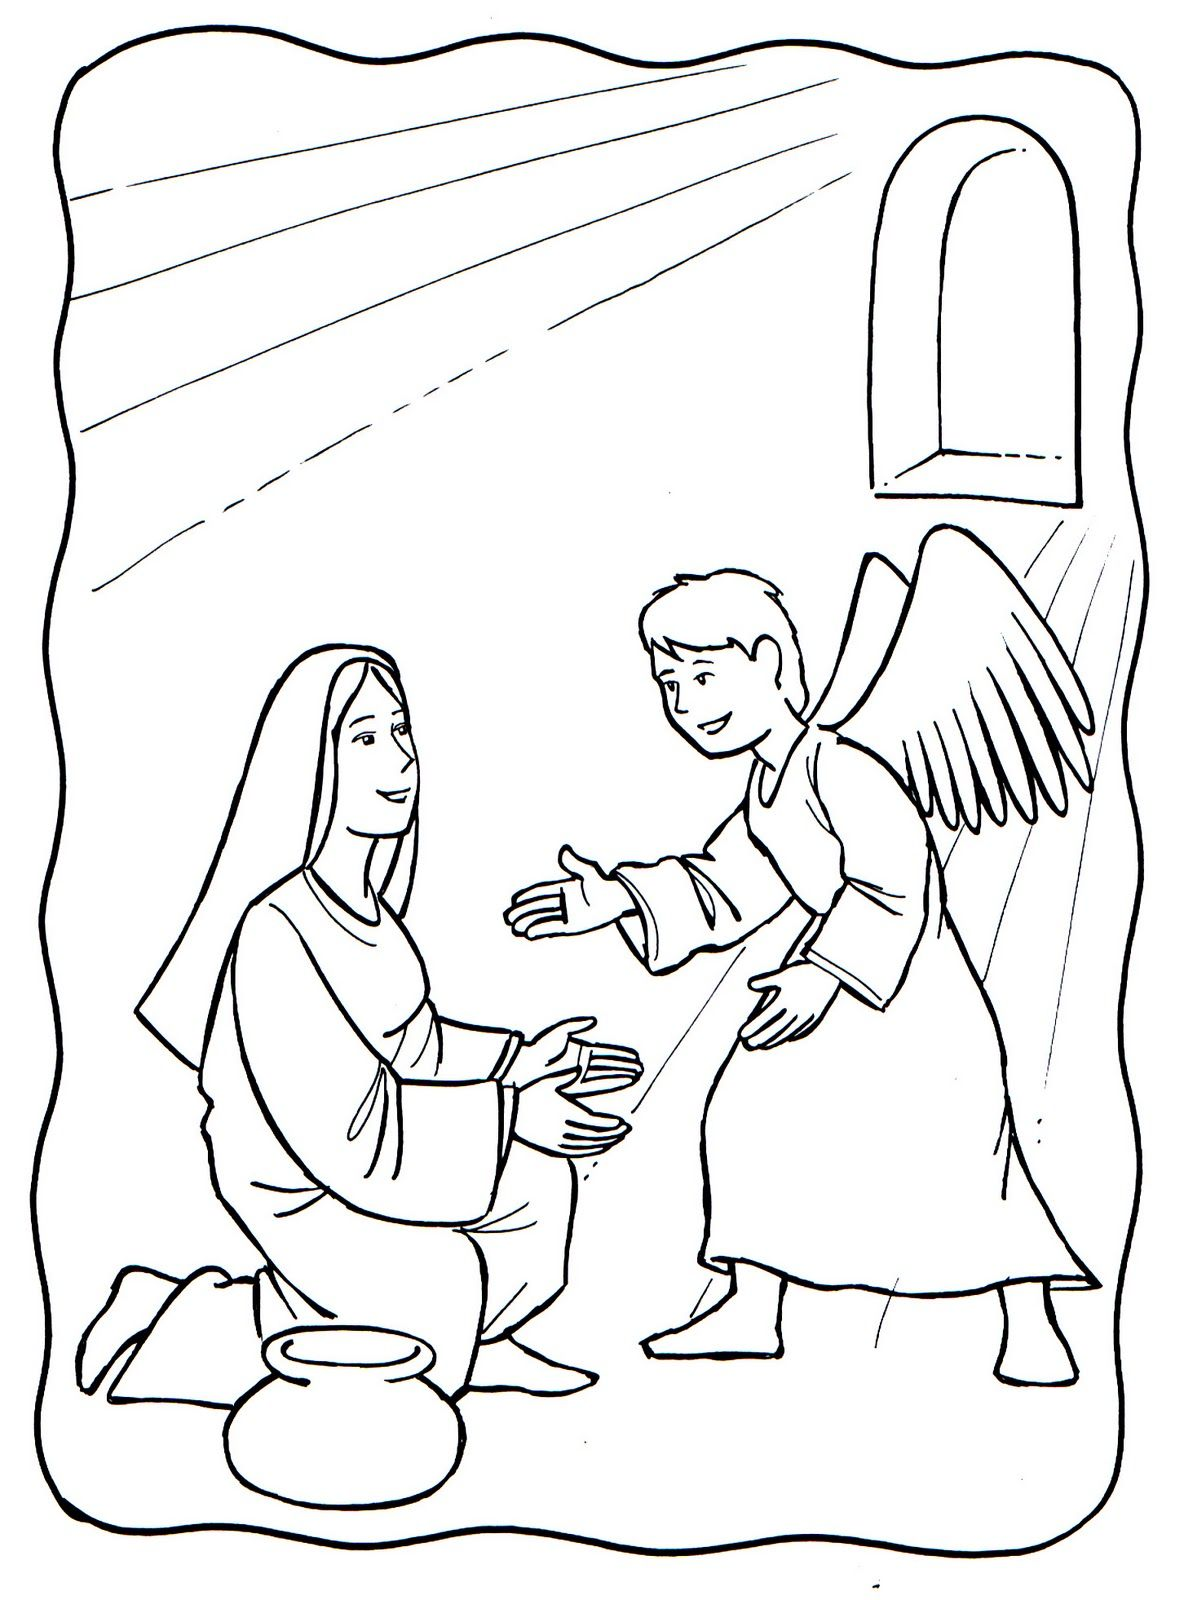 Bible Coloring Pages For Kids Angel Gabriel And Mary Bible Coloring Pages Bible Coloring Bible Activities For Kids